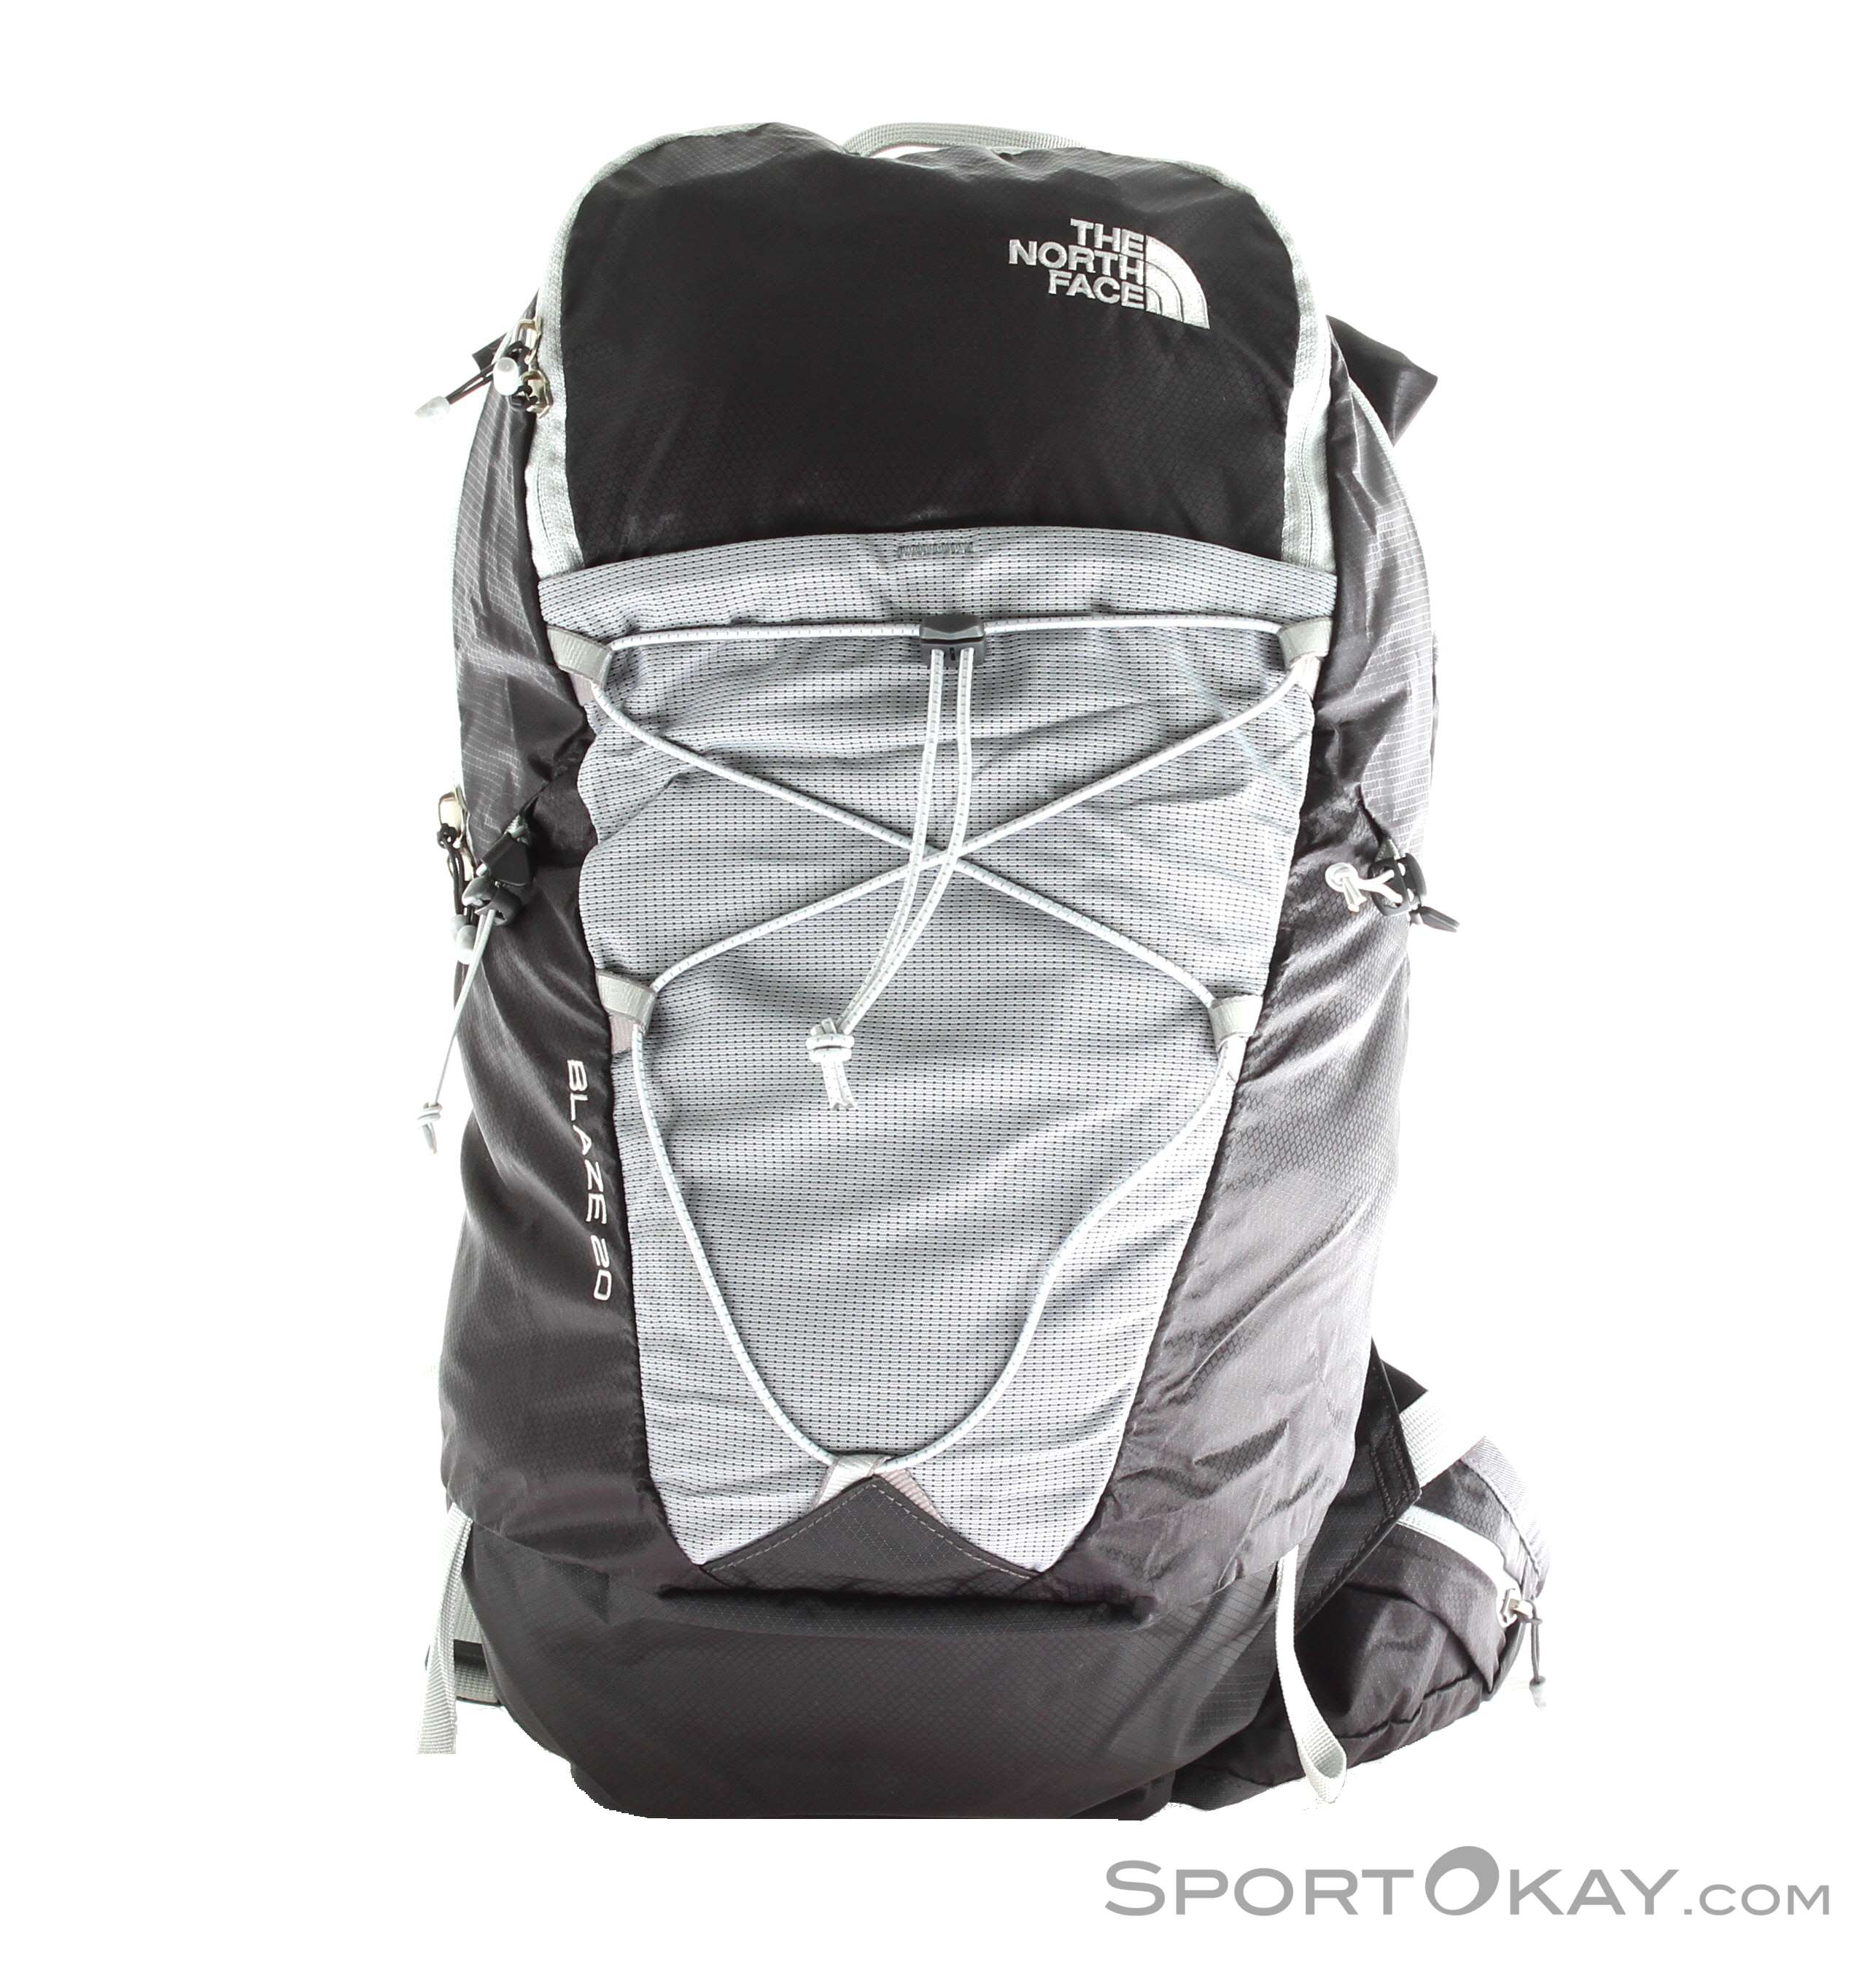 The North Face The North Face Blaze 20l Rucksack